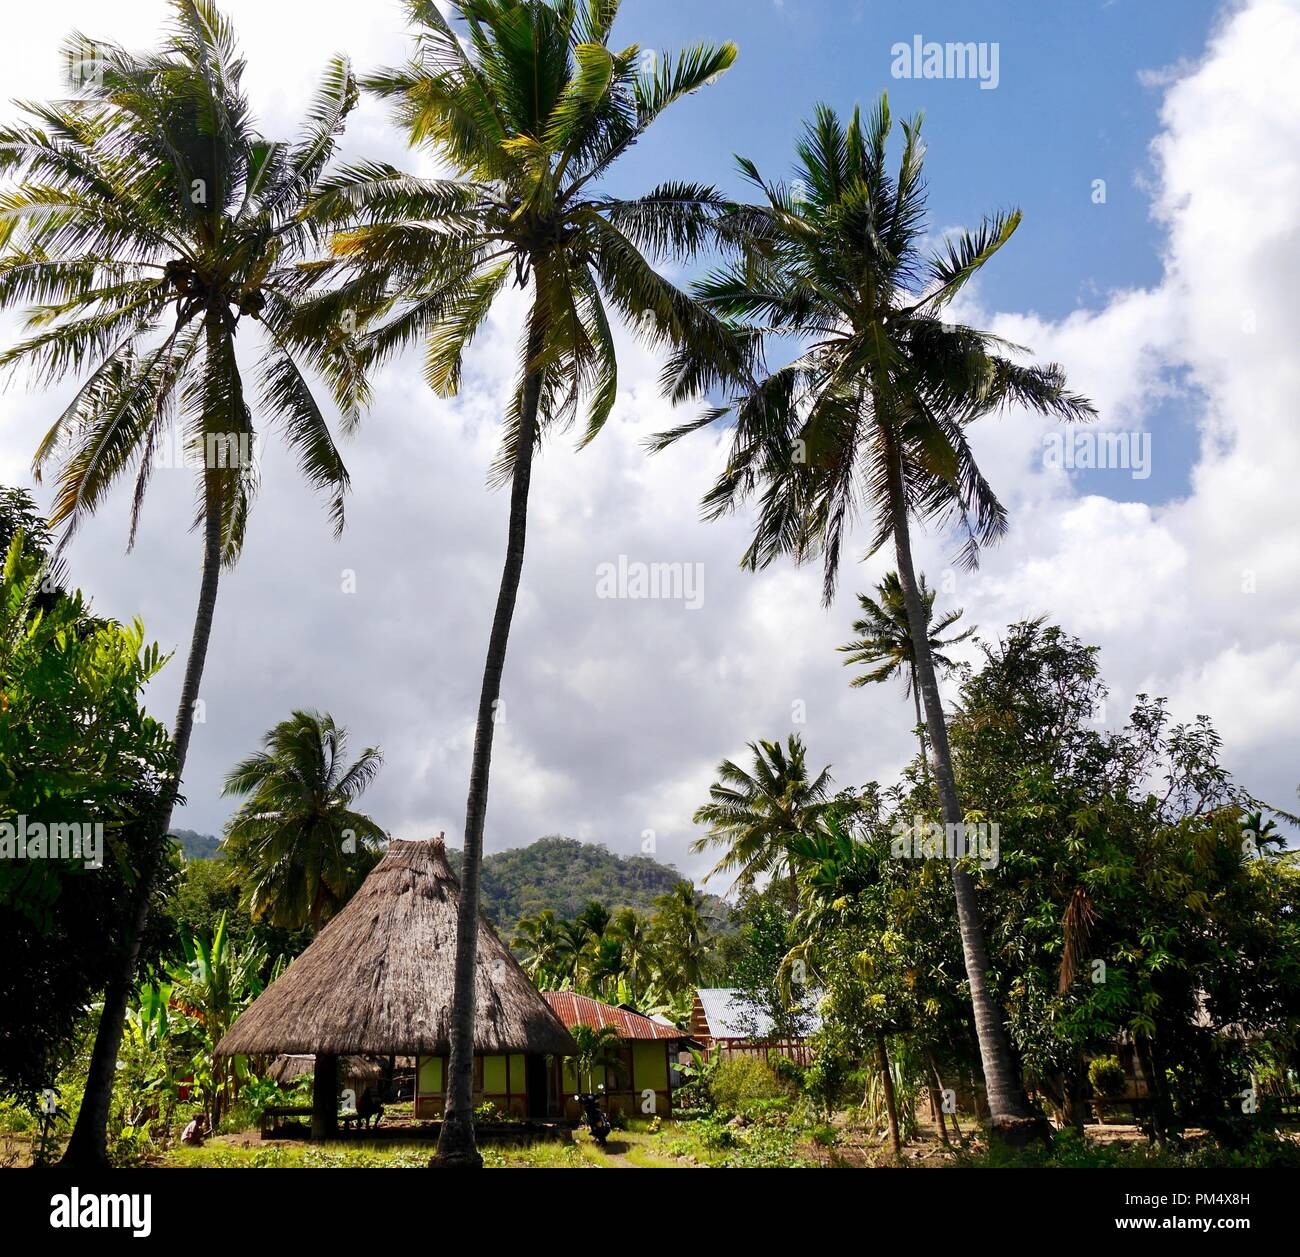 Simple traditional house in countryside on Indonesian island of West Timor with tall palms in foreground and mountains beyond - Stock Image